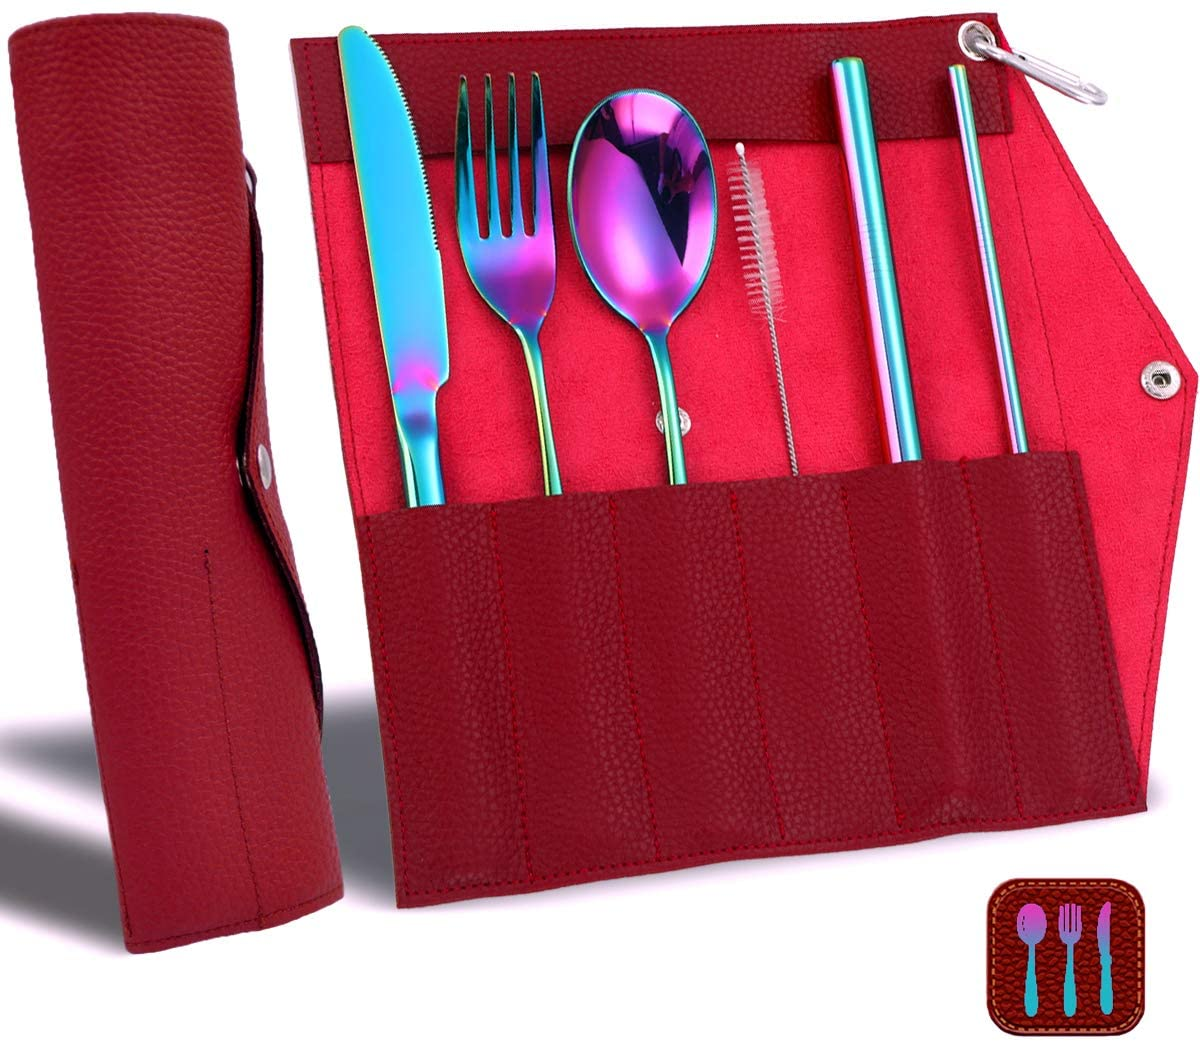 Portable Utensils Silverware Set and PU Leather Wrap Bag, Travel Camping Cutlery Set, Flatware Organizer for Travel Camping Office or School Lunch (Rainbow & Wine red)